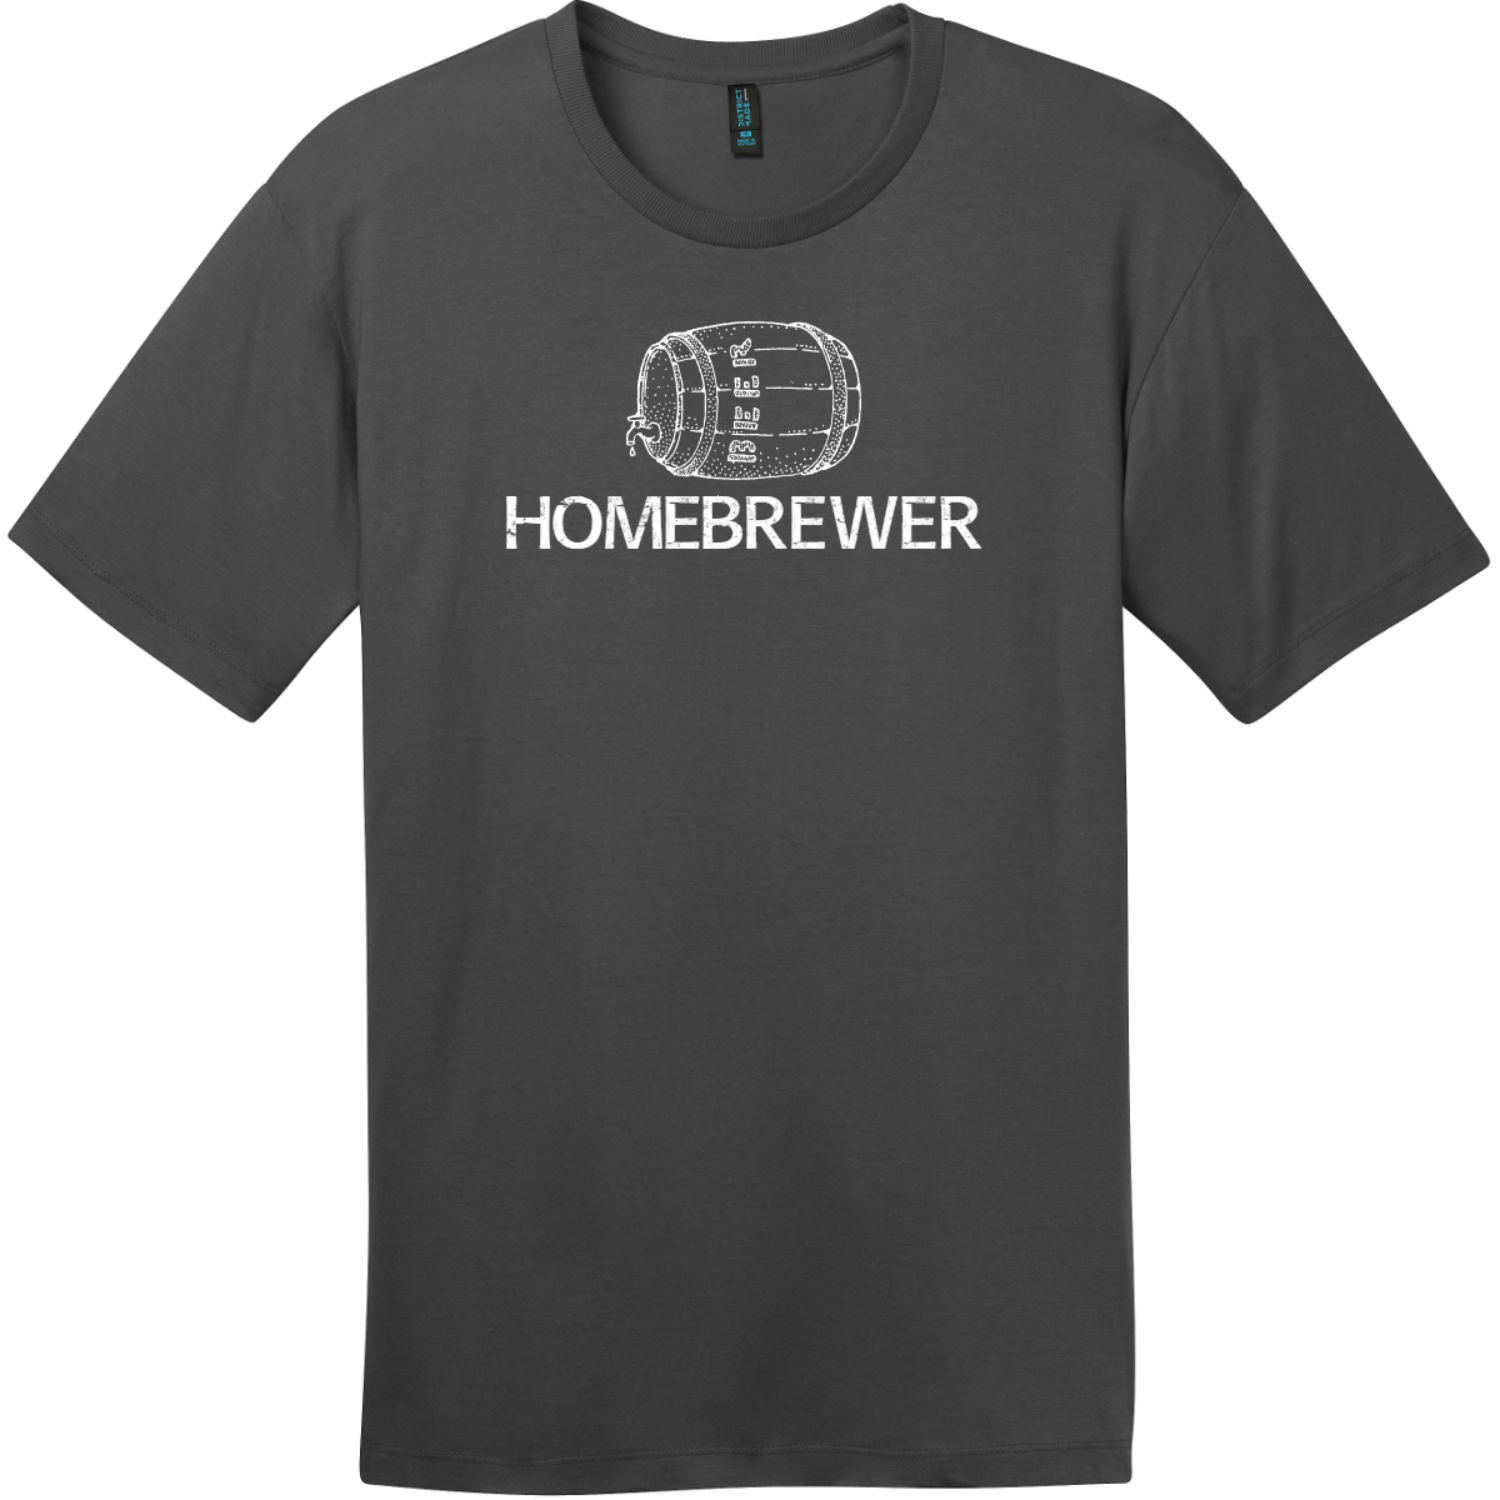 Homebrewer Beer T-Shirt Charcoal District Perfect Weight Tee DT104